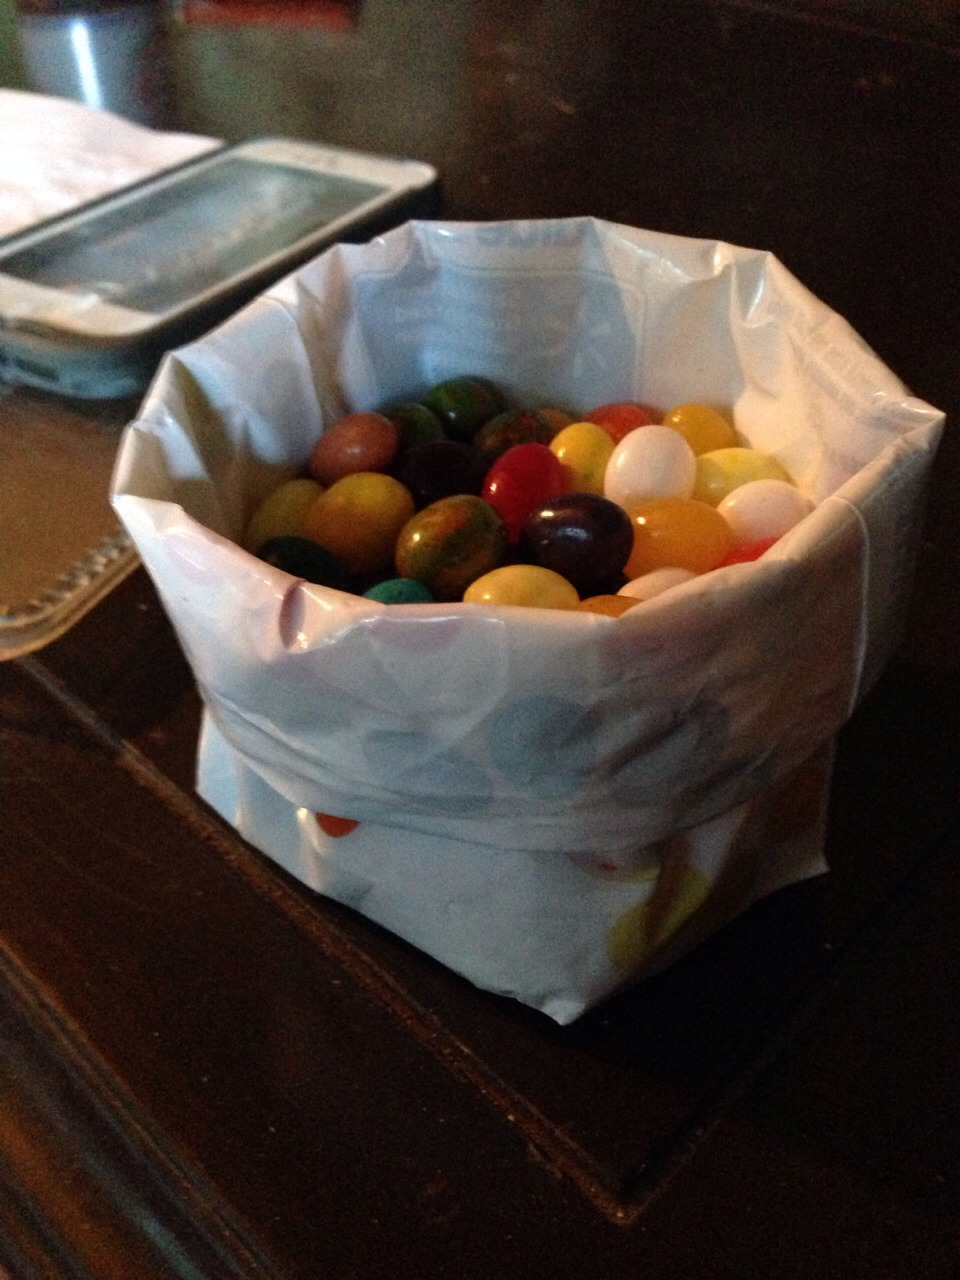 Role down the sides if the bag to make an easy access bowl